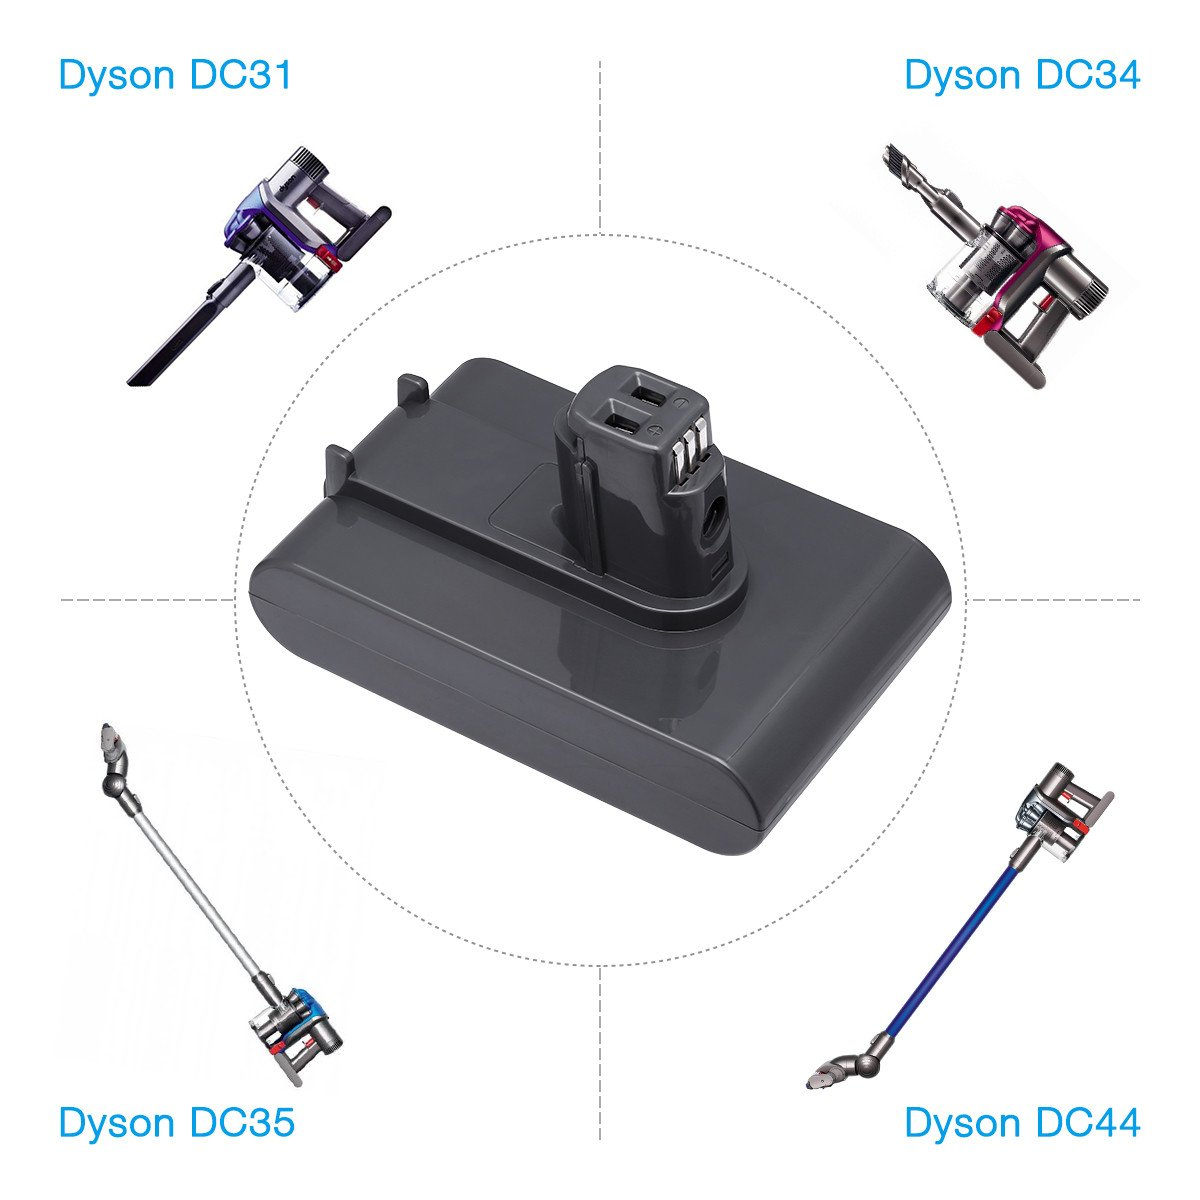 Amazon.com: Powerextra Batería de repuesto para Dyson: Home ...